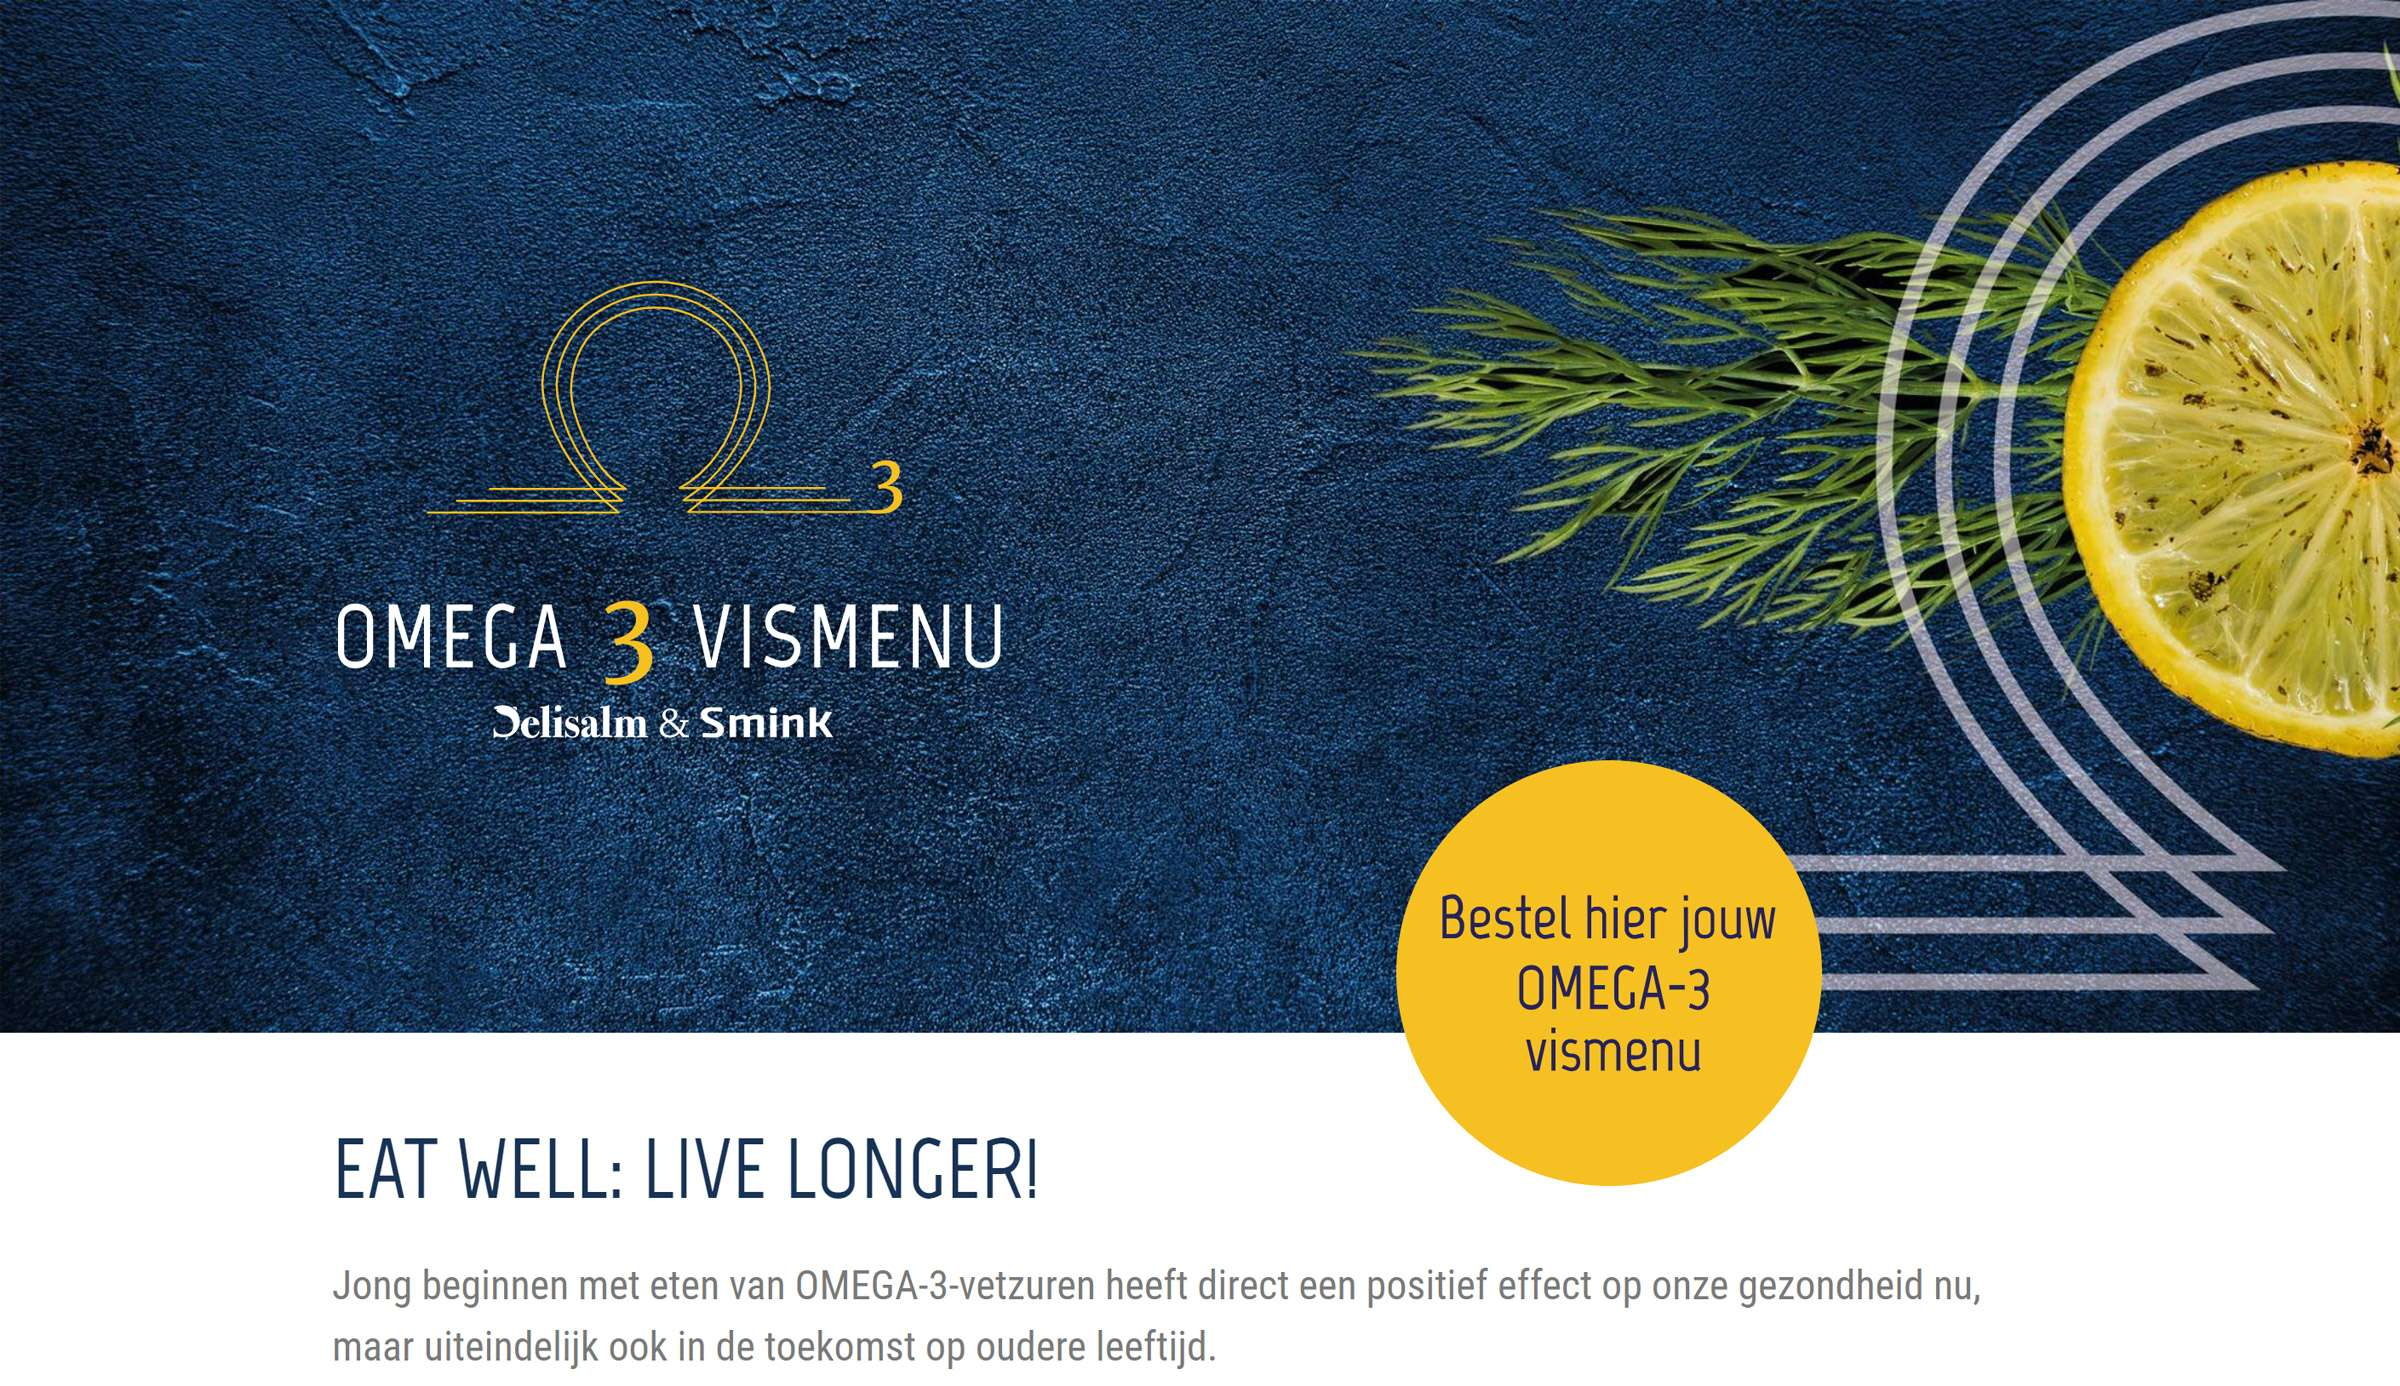 omega3vismenu by bepos and beeldende zaken